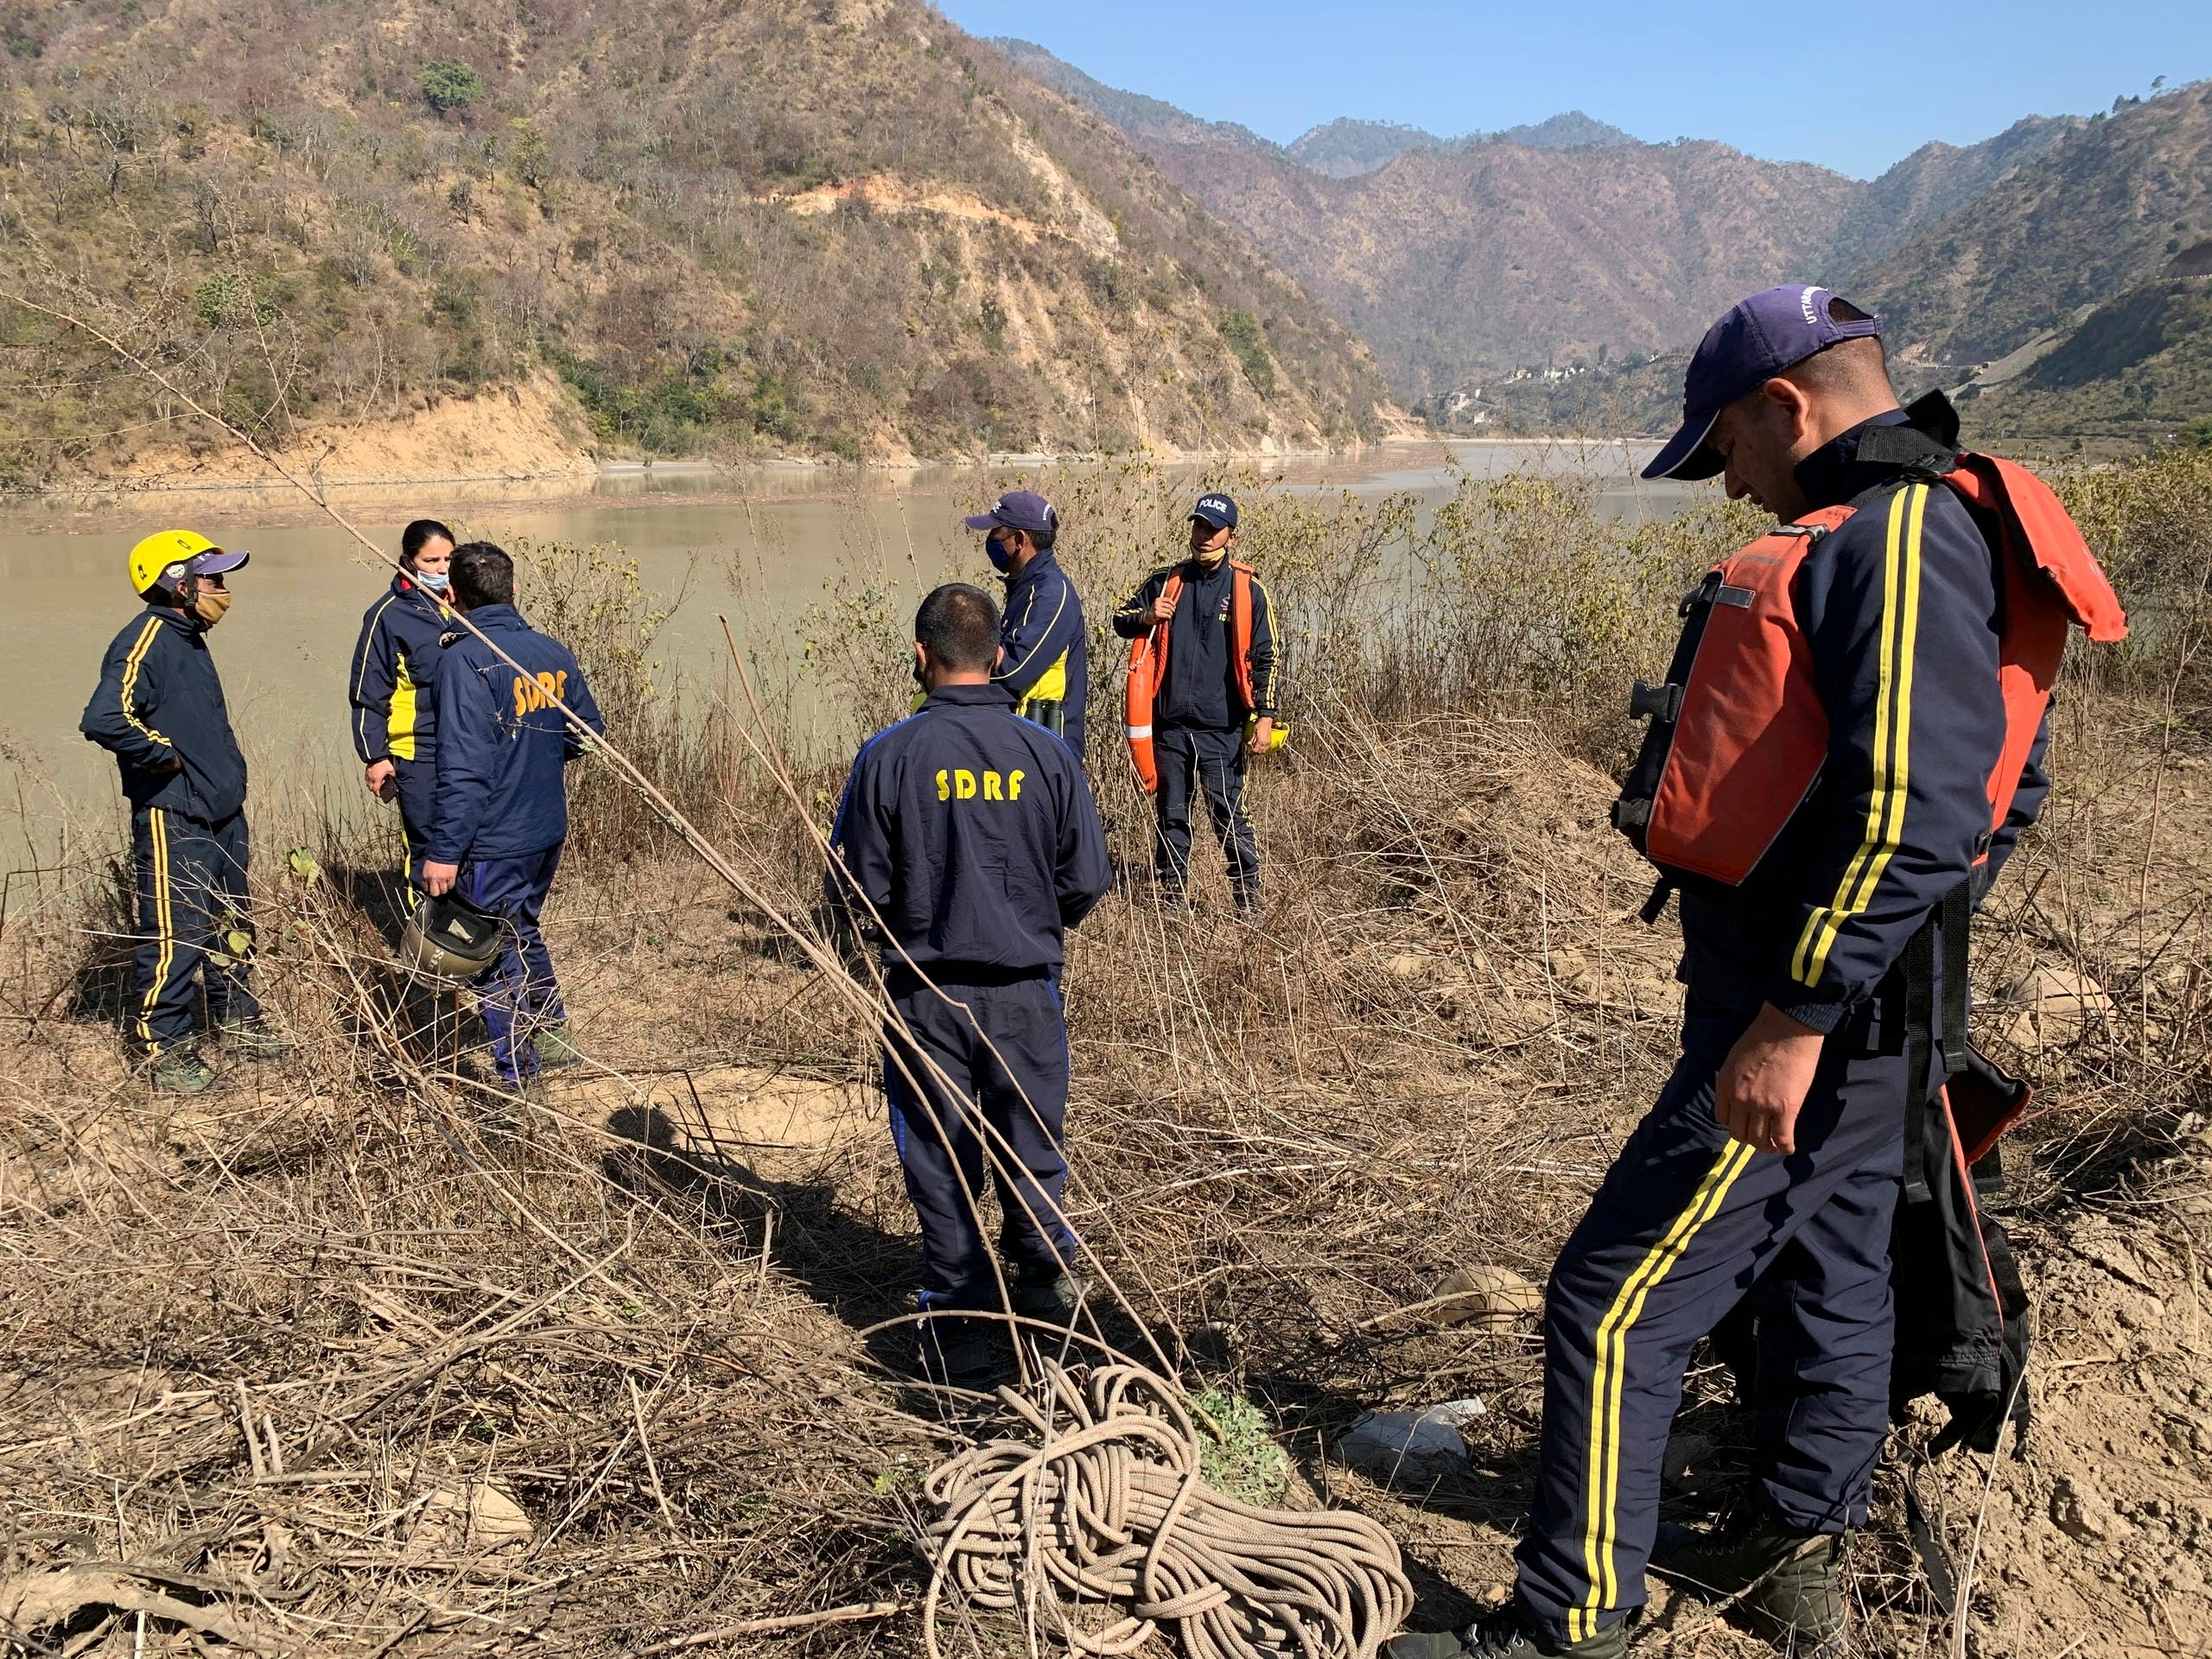 Rescuers prepare to search for bodies in the downstream of Alaknanda River in Rudraprayag, northern state of Uttarakhand, India, Monday, February 8, 2021. (AP)